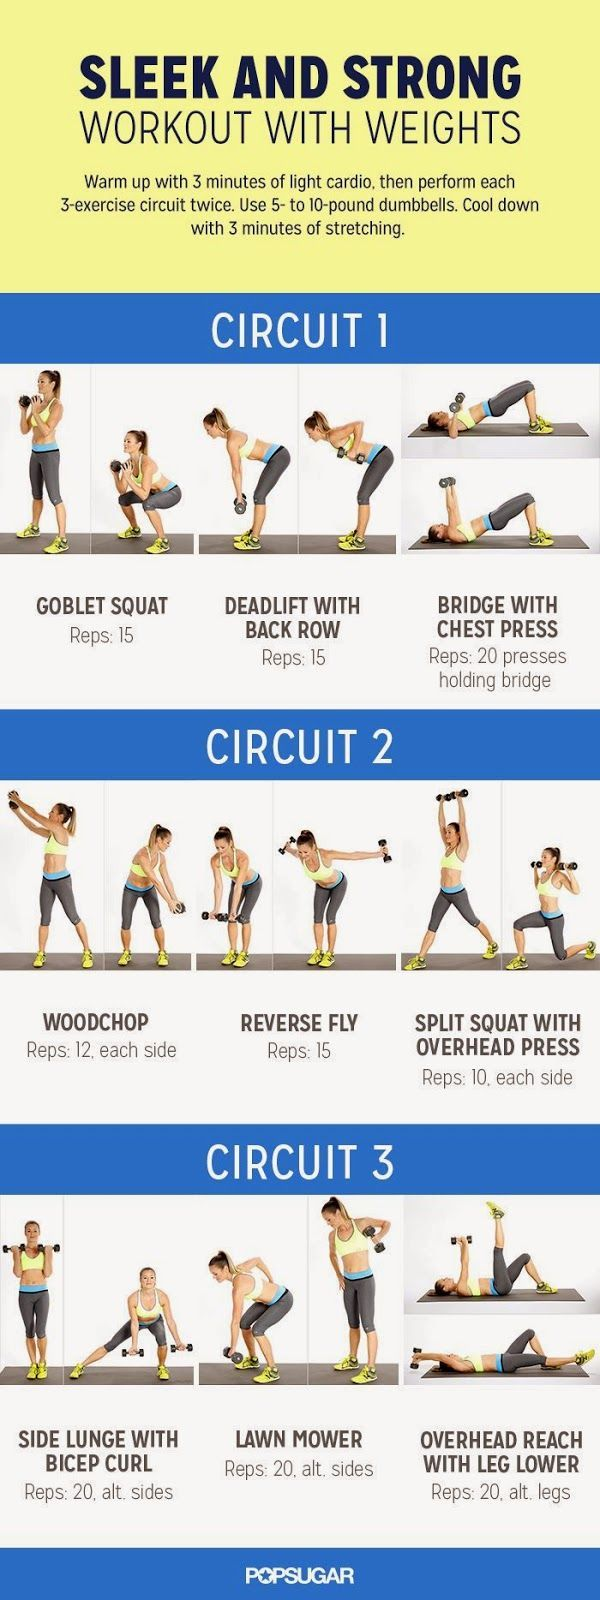 Get a sleek and strong workout with weights.